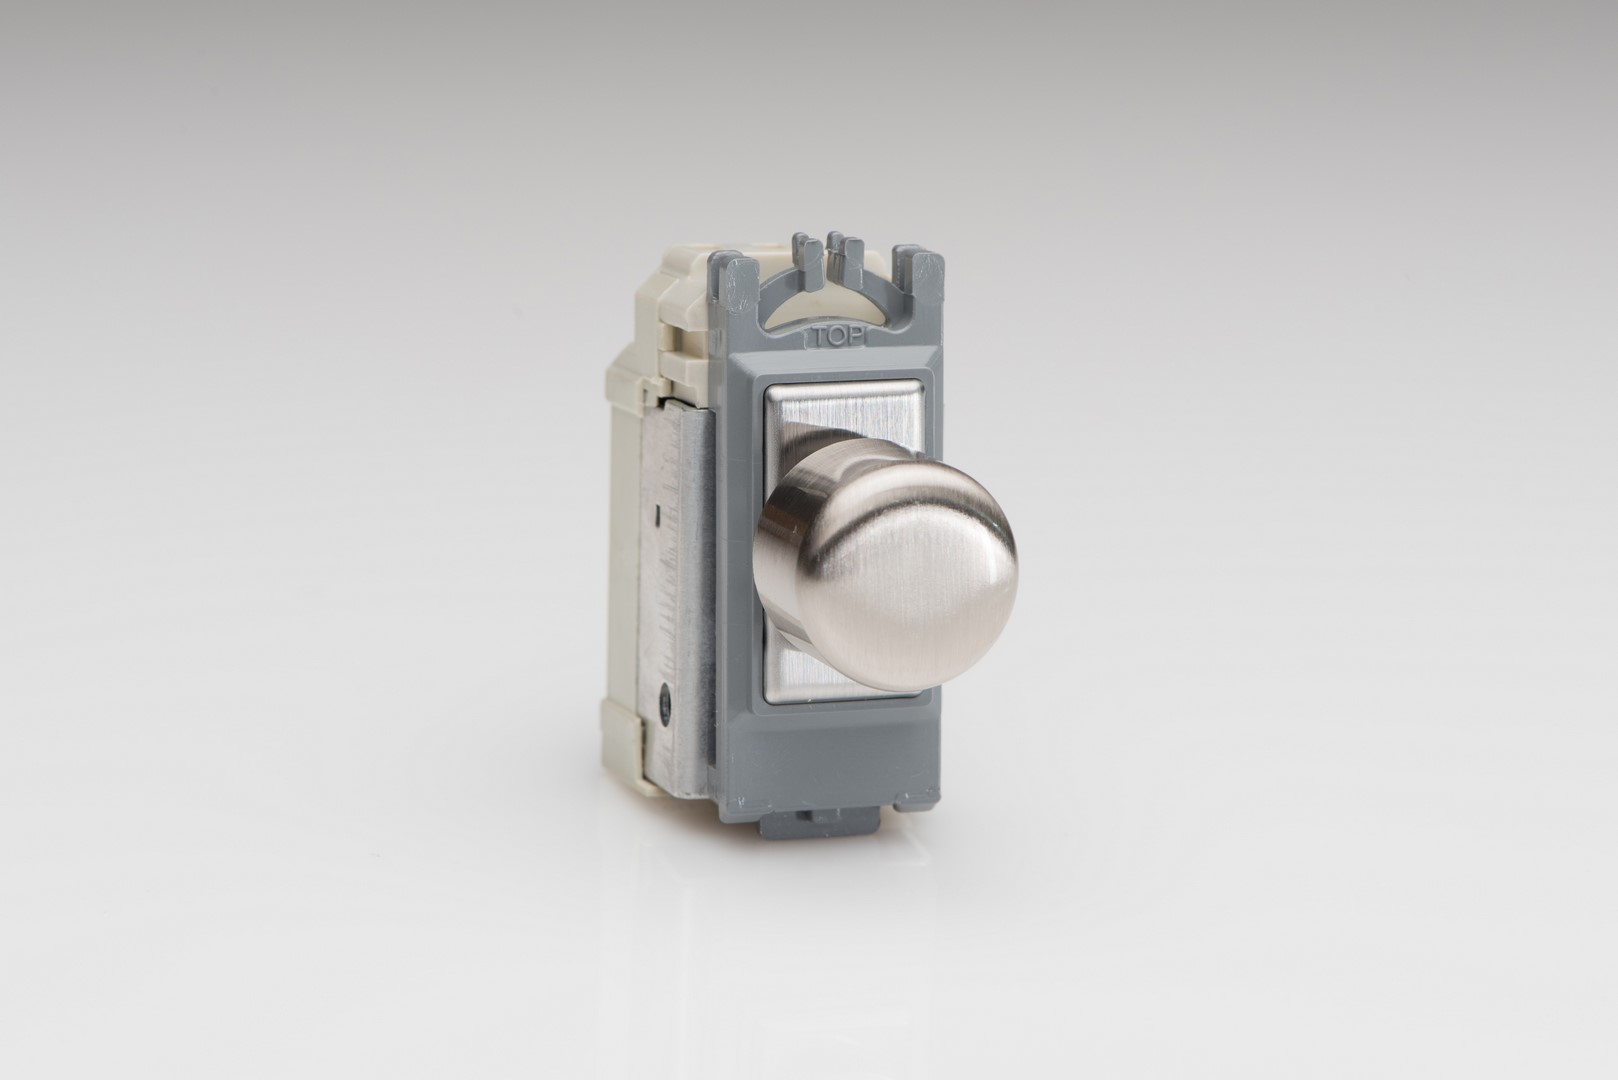 GH0S is a Brushed Steel 1 Gang, Push On/Off Non-Dimming (Dummy Dimmer) module for Varilight power grid plates.